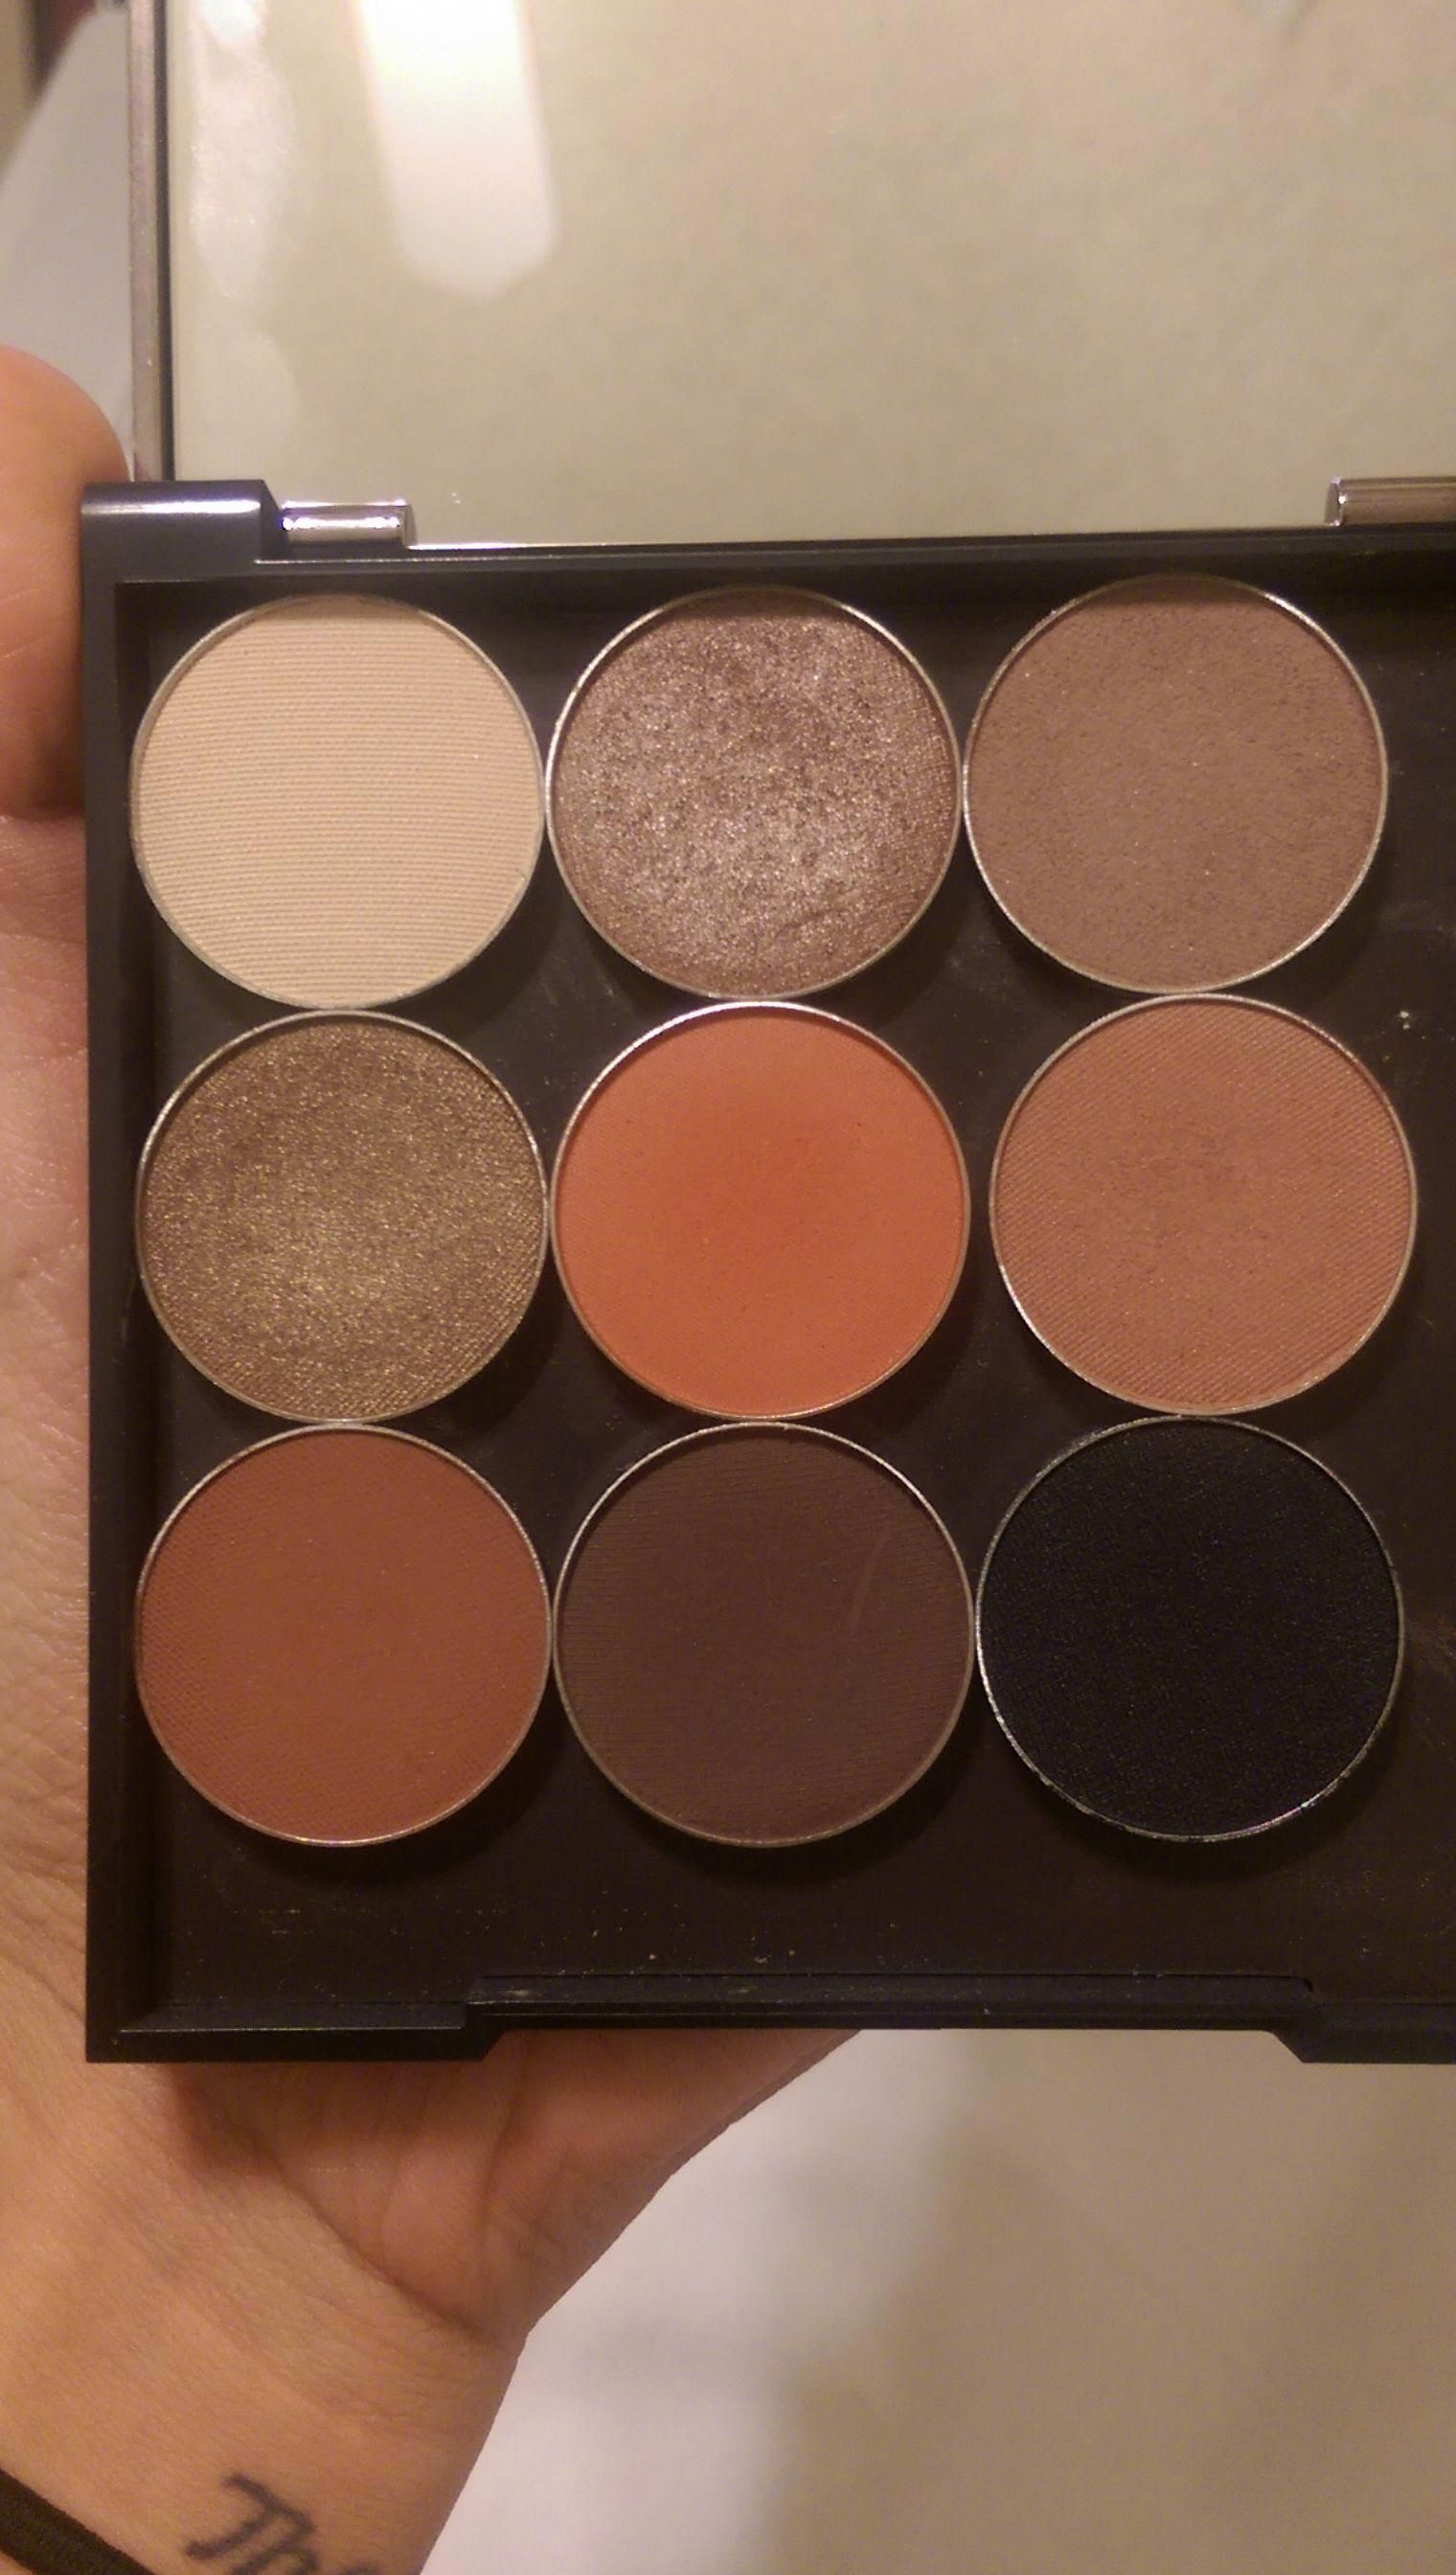 Makeup Geek Dupes For Kylie Palette Makeup Geek Makeup Geek Eyeshadow Eyeshadow